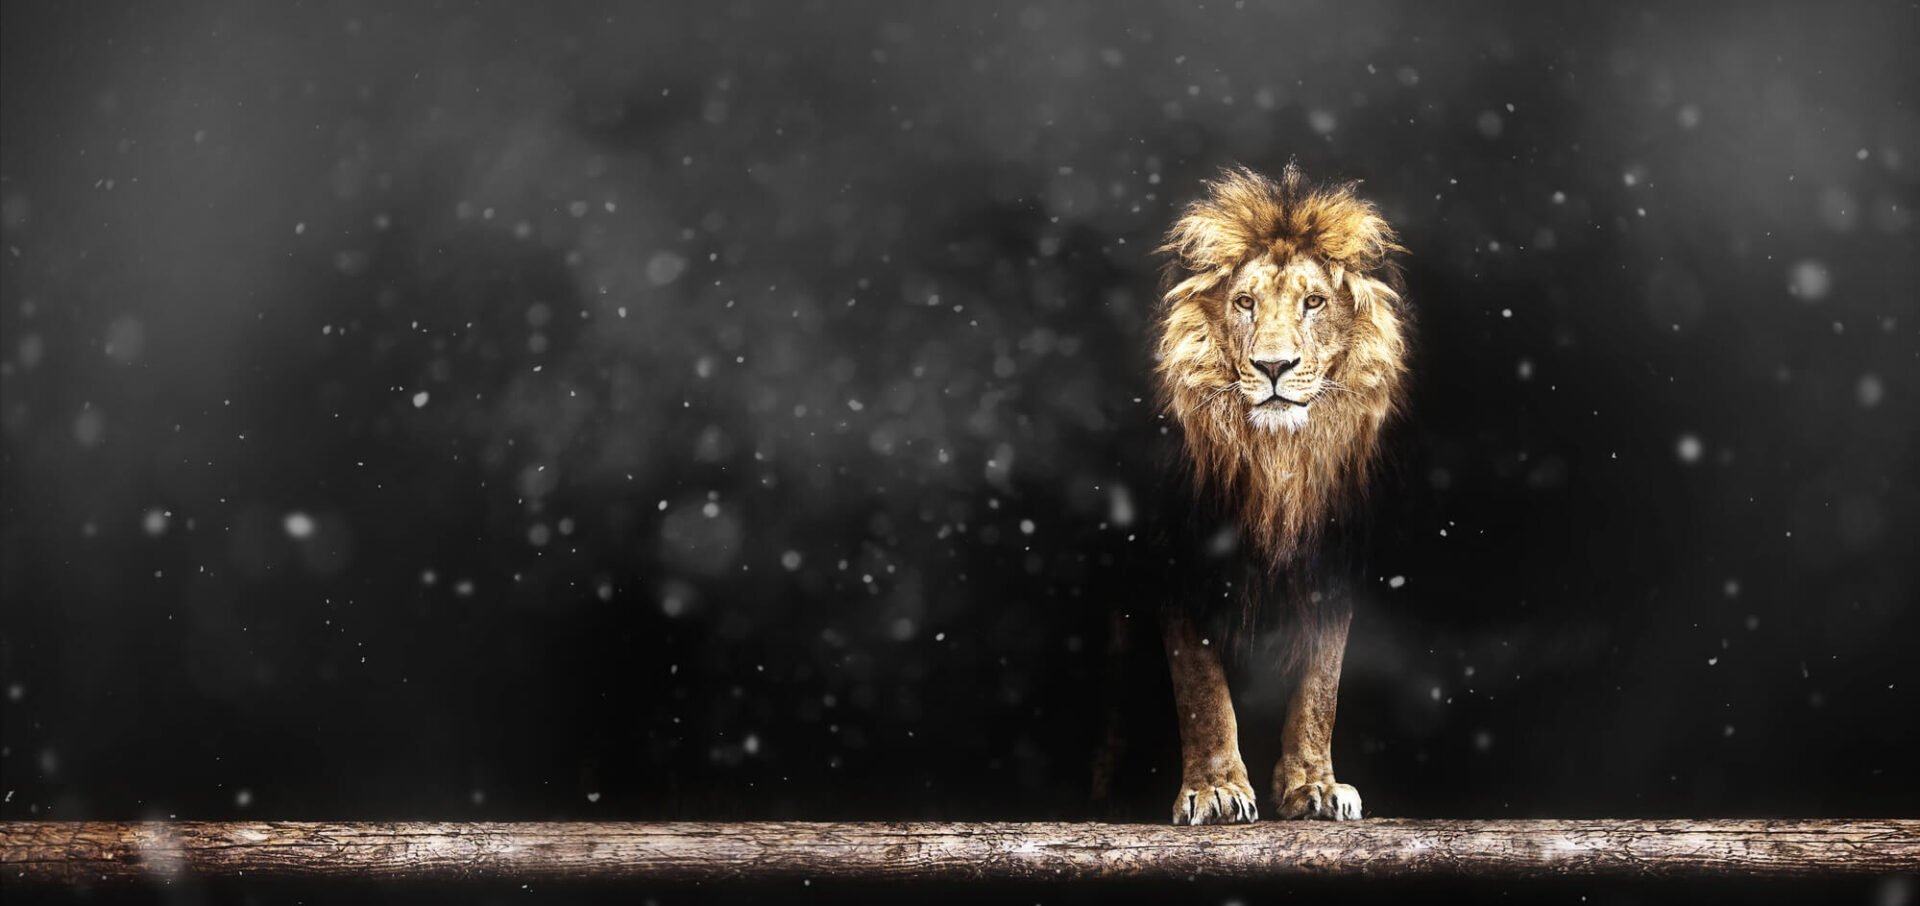 Lion leader of the pack